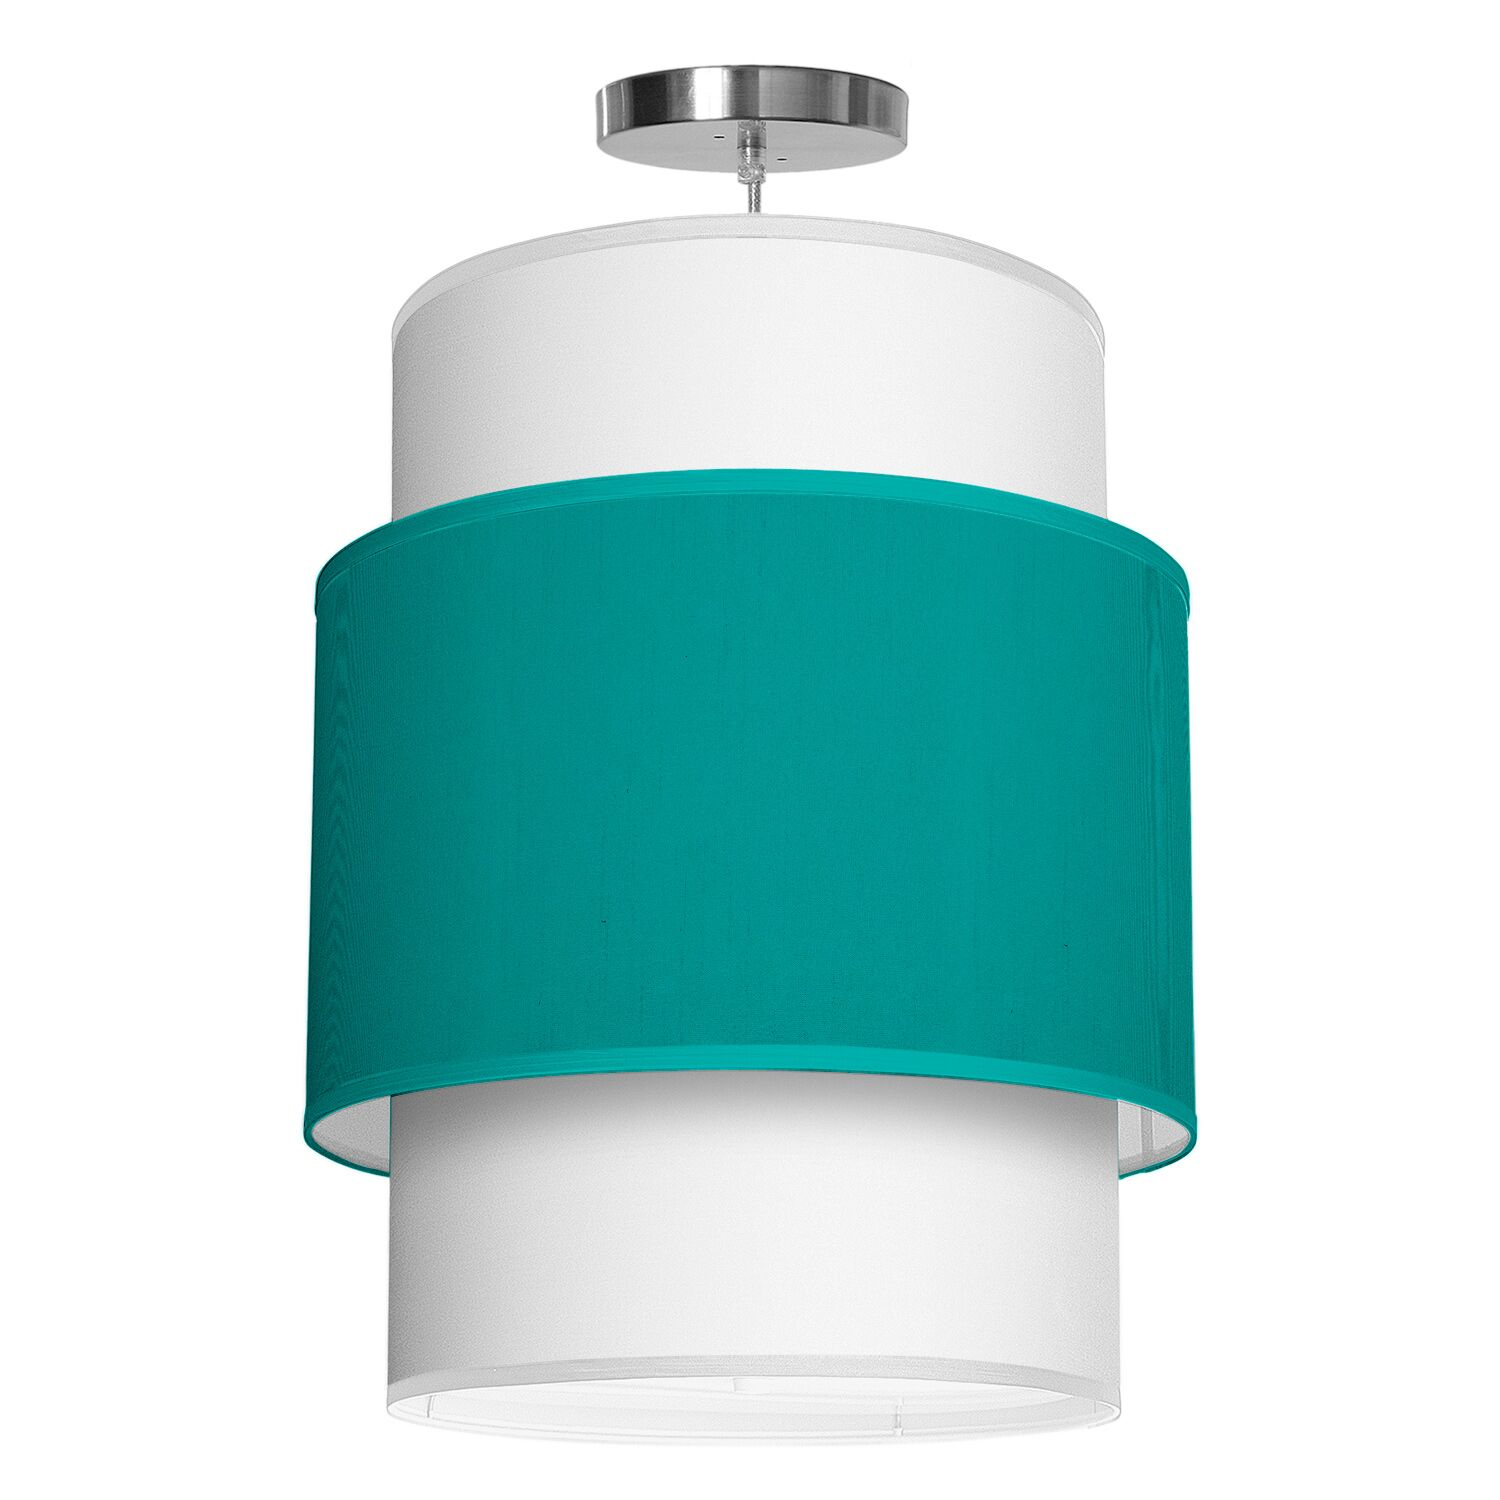 Evan 1-Light Pendant Shade Color: Turquoise, Size: 36